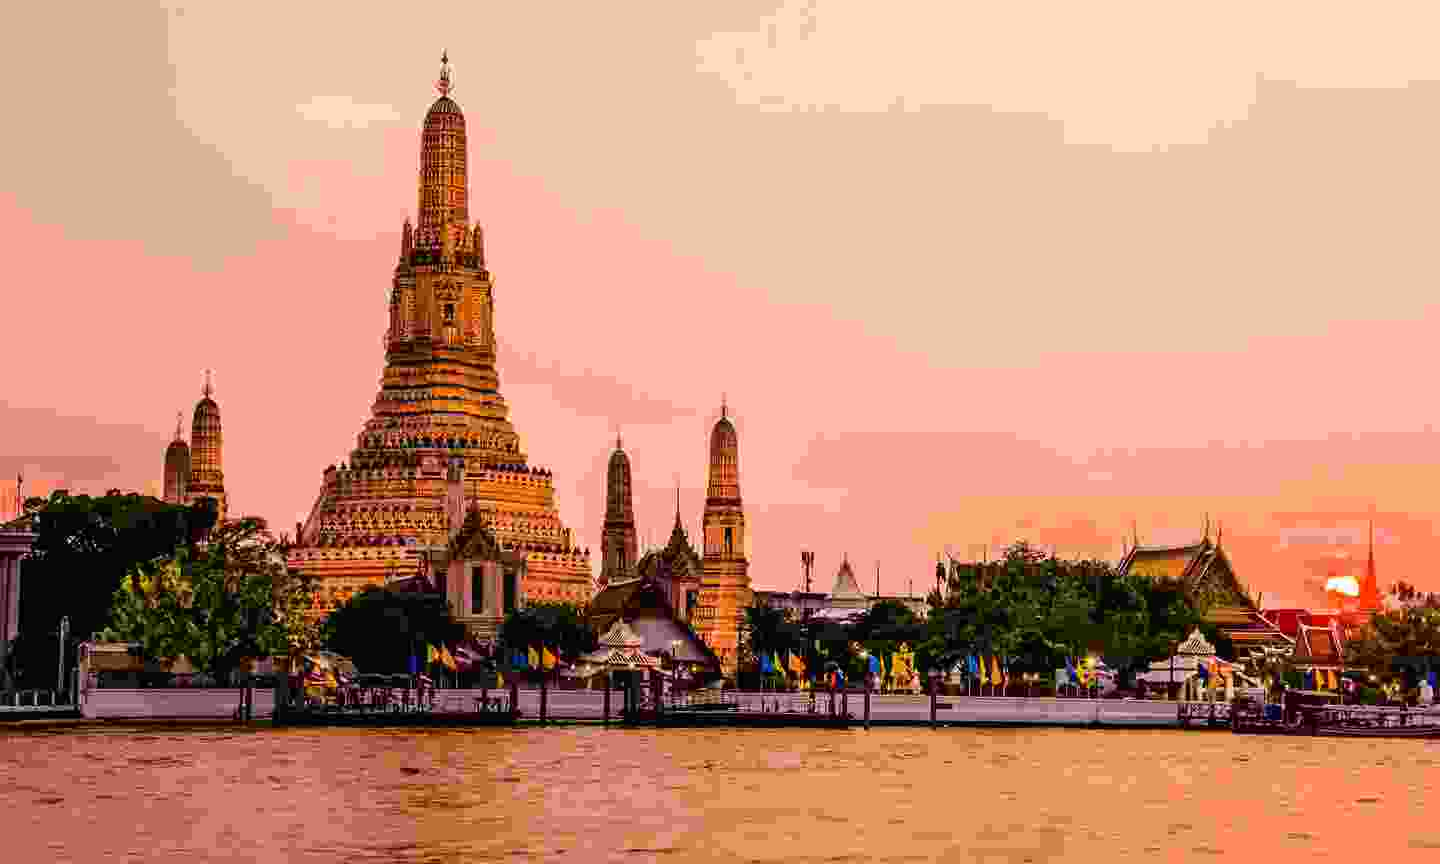 Wat Arun or Temple of the Dawn is a temple on the Thonburi west bank of the Chao Phraya River (Shutterstock)